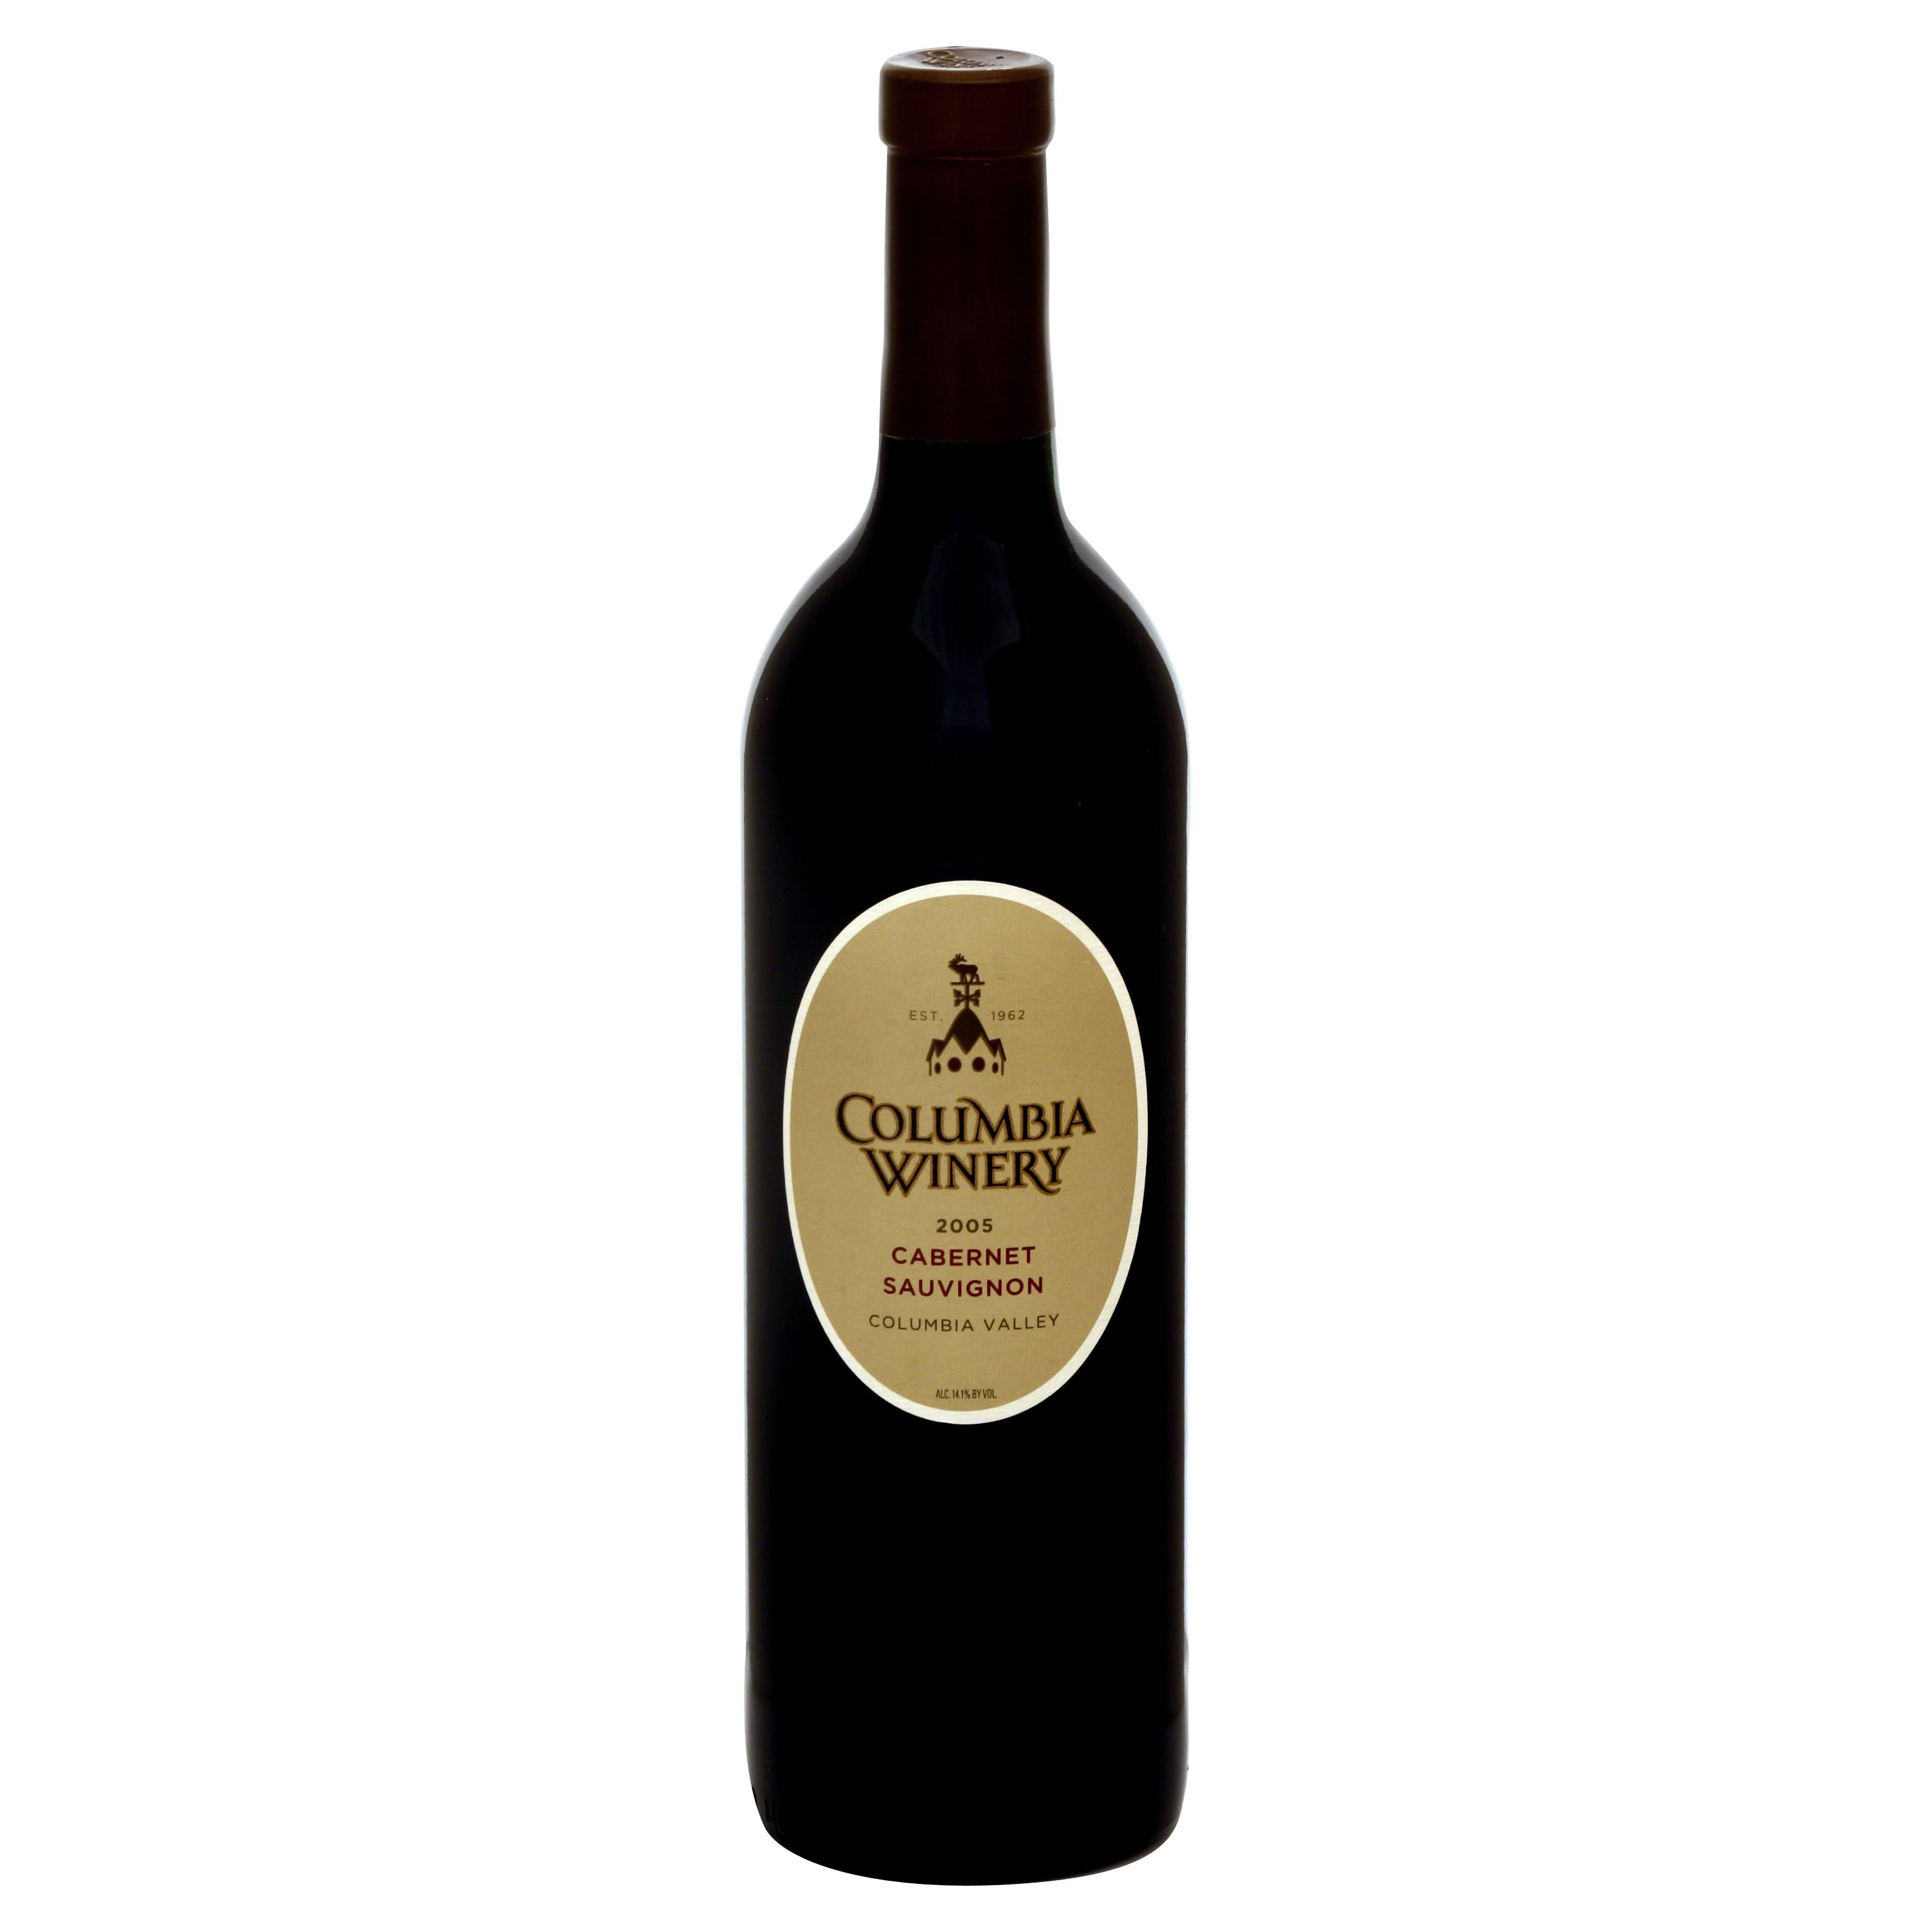 Columbia Winery Cabernet Sauvignon, Columbia Valley, 2004 - 750 ml